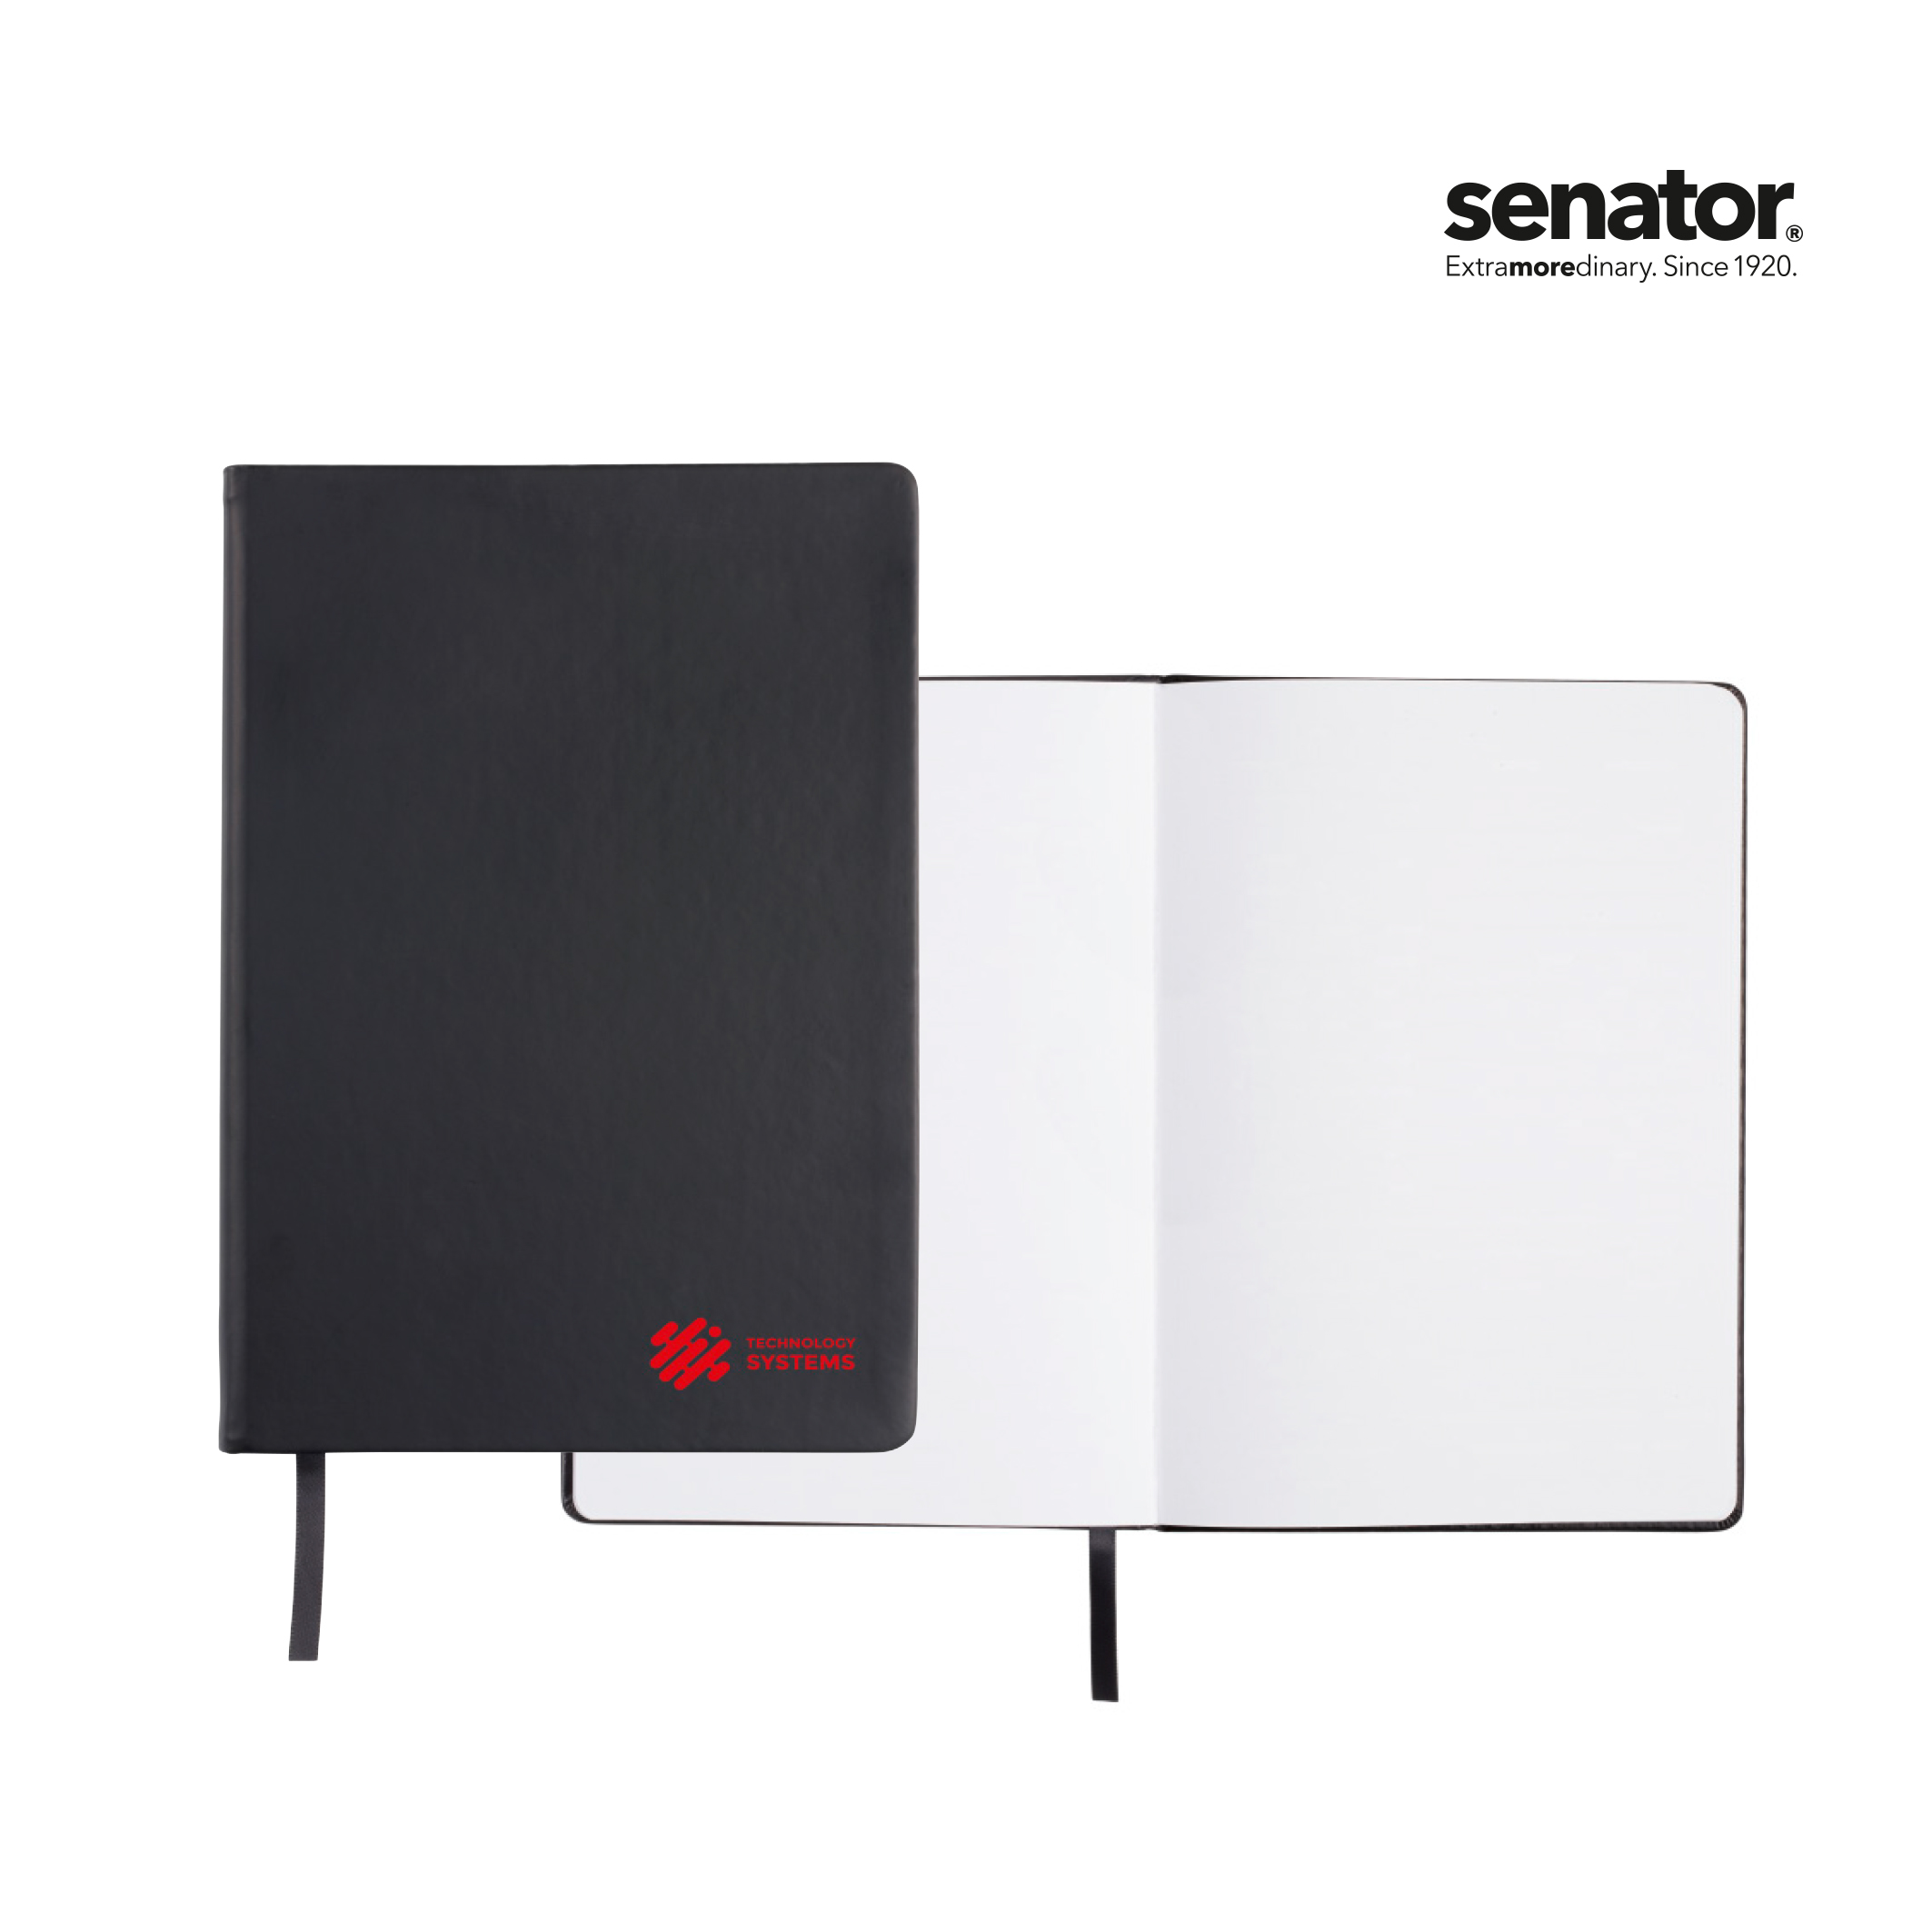 senator Notebook soft